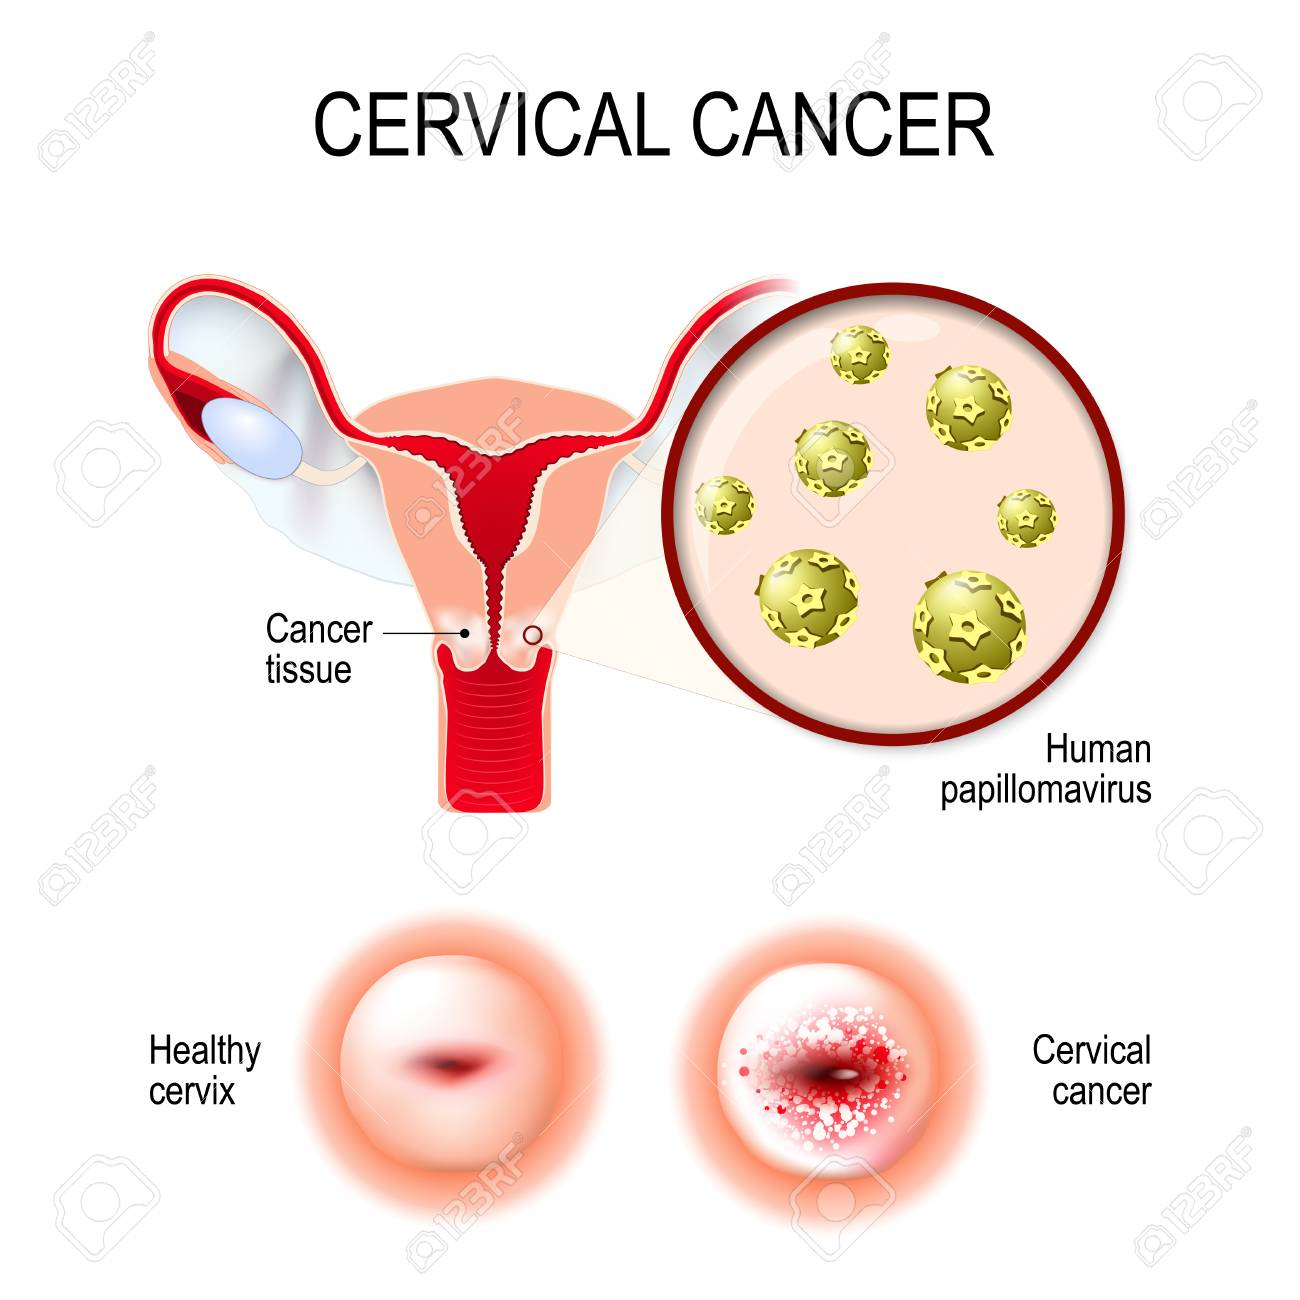 cervical cancer caused by hpv genetic papillomas